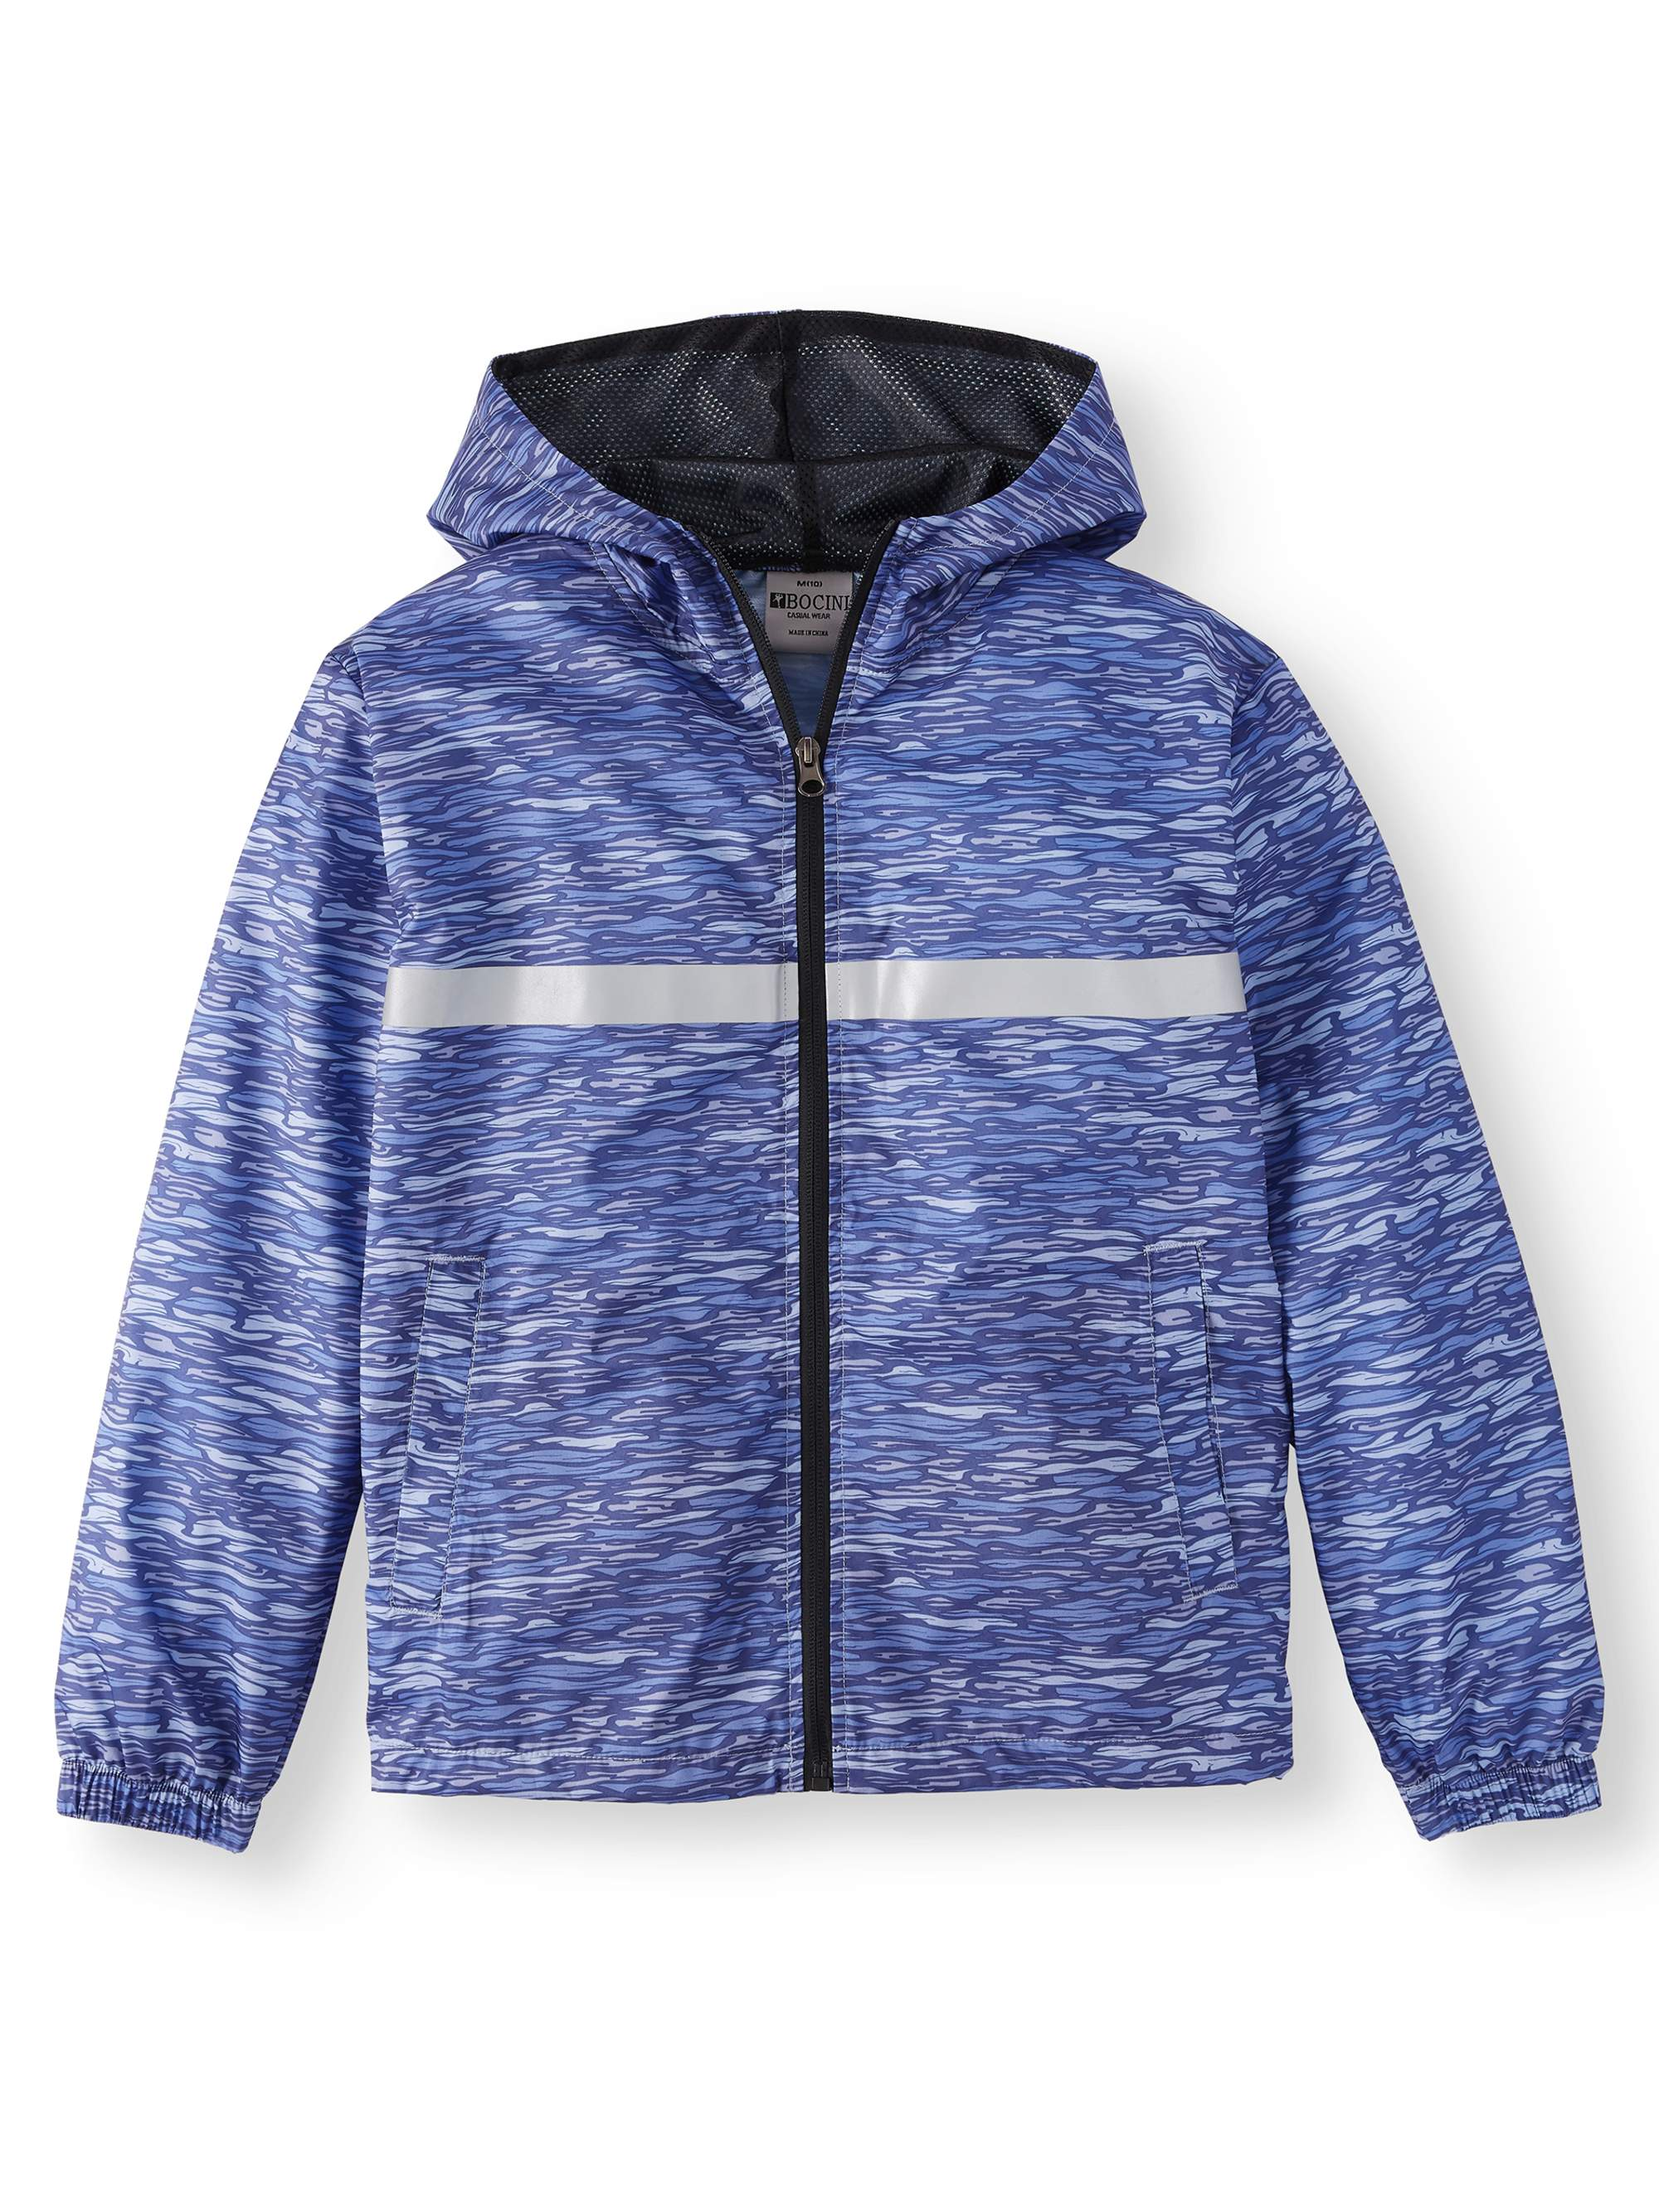 Zip Up Hooded Wind Breaker with Reflective Tape (Big Boys)